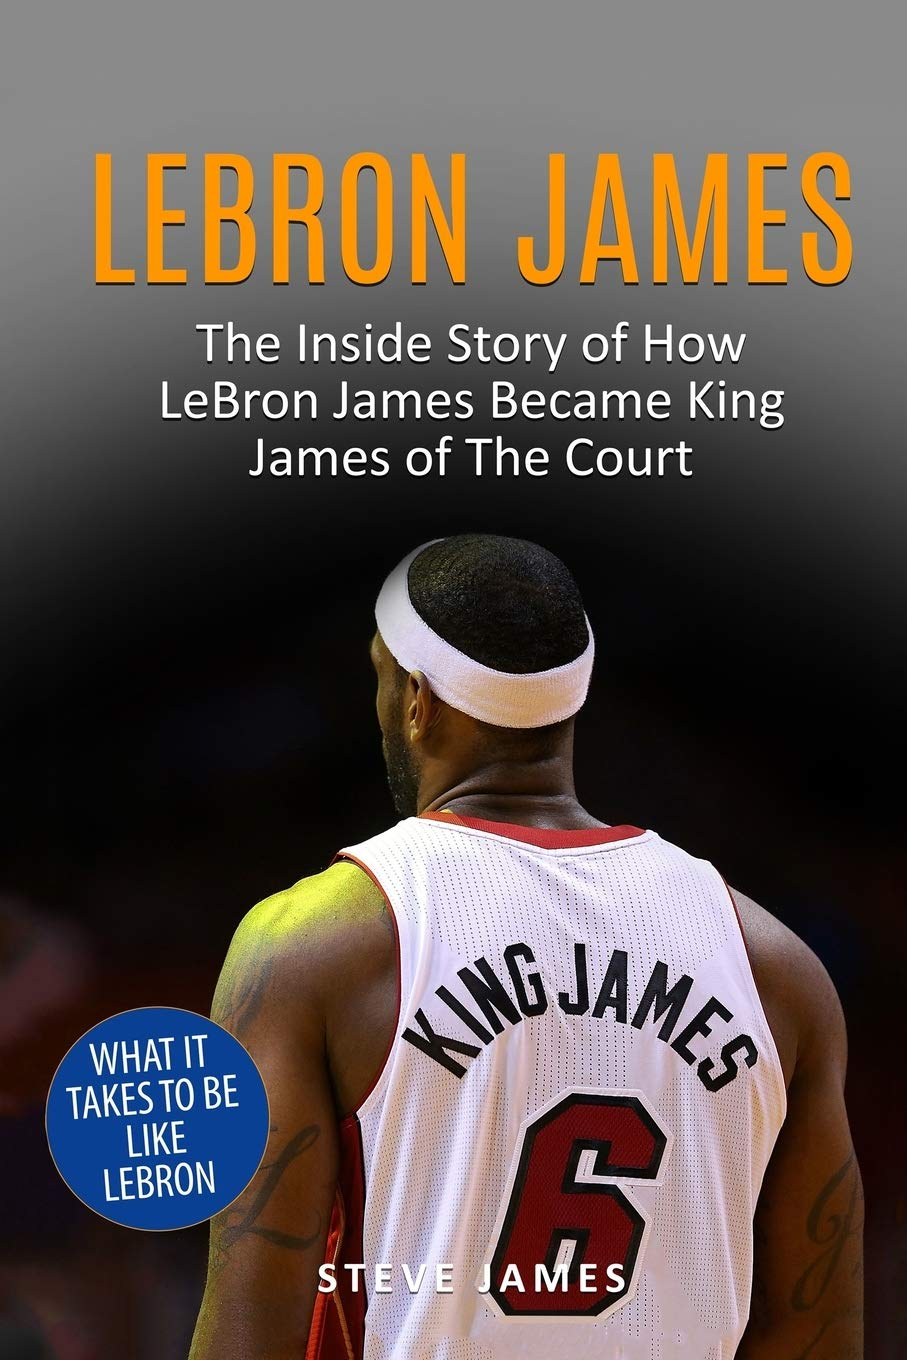 Image OfLebron James: The Inside Story Of How LeBron James Became King James Of The Court (Basketball Biographies In Black&White)